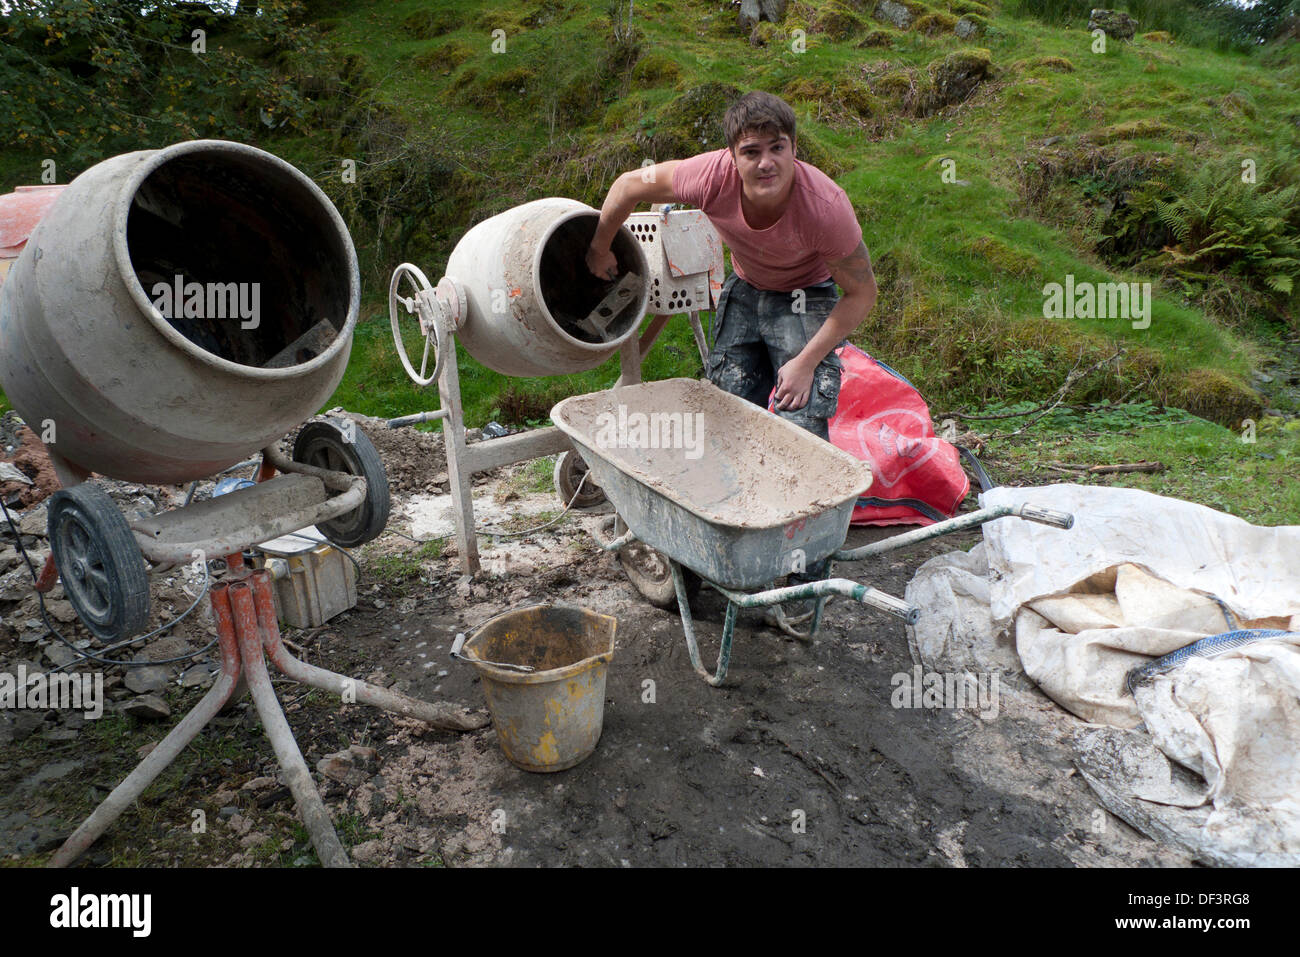 Llanwrda, Wales UK Fri 27th Sept 2013. 22 year old Carl Evans of Ammanford, a fully qualified plasterer, cleans Stock Photo